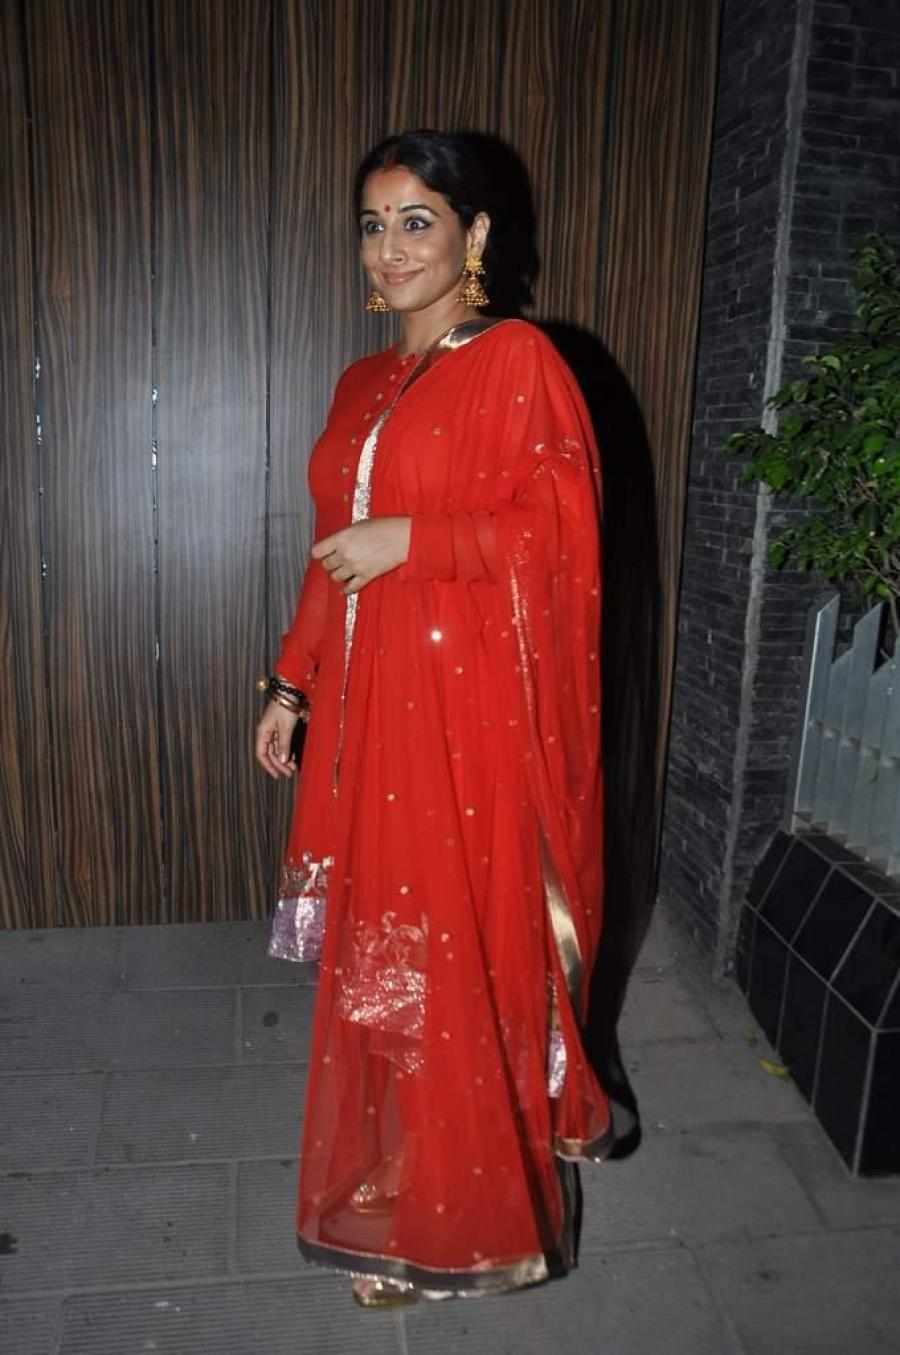 Vidya Balan Hot Photos At Diwali Party In Red Dress